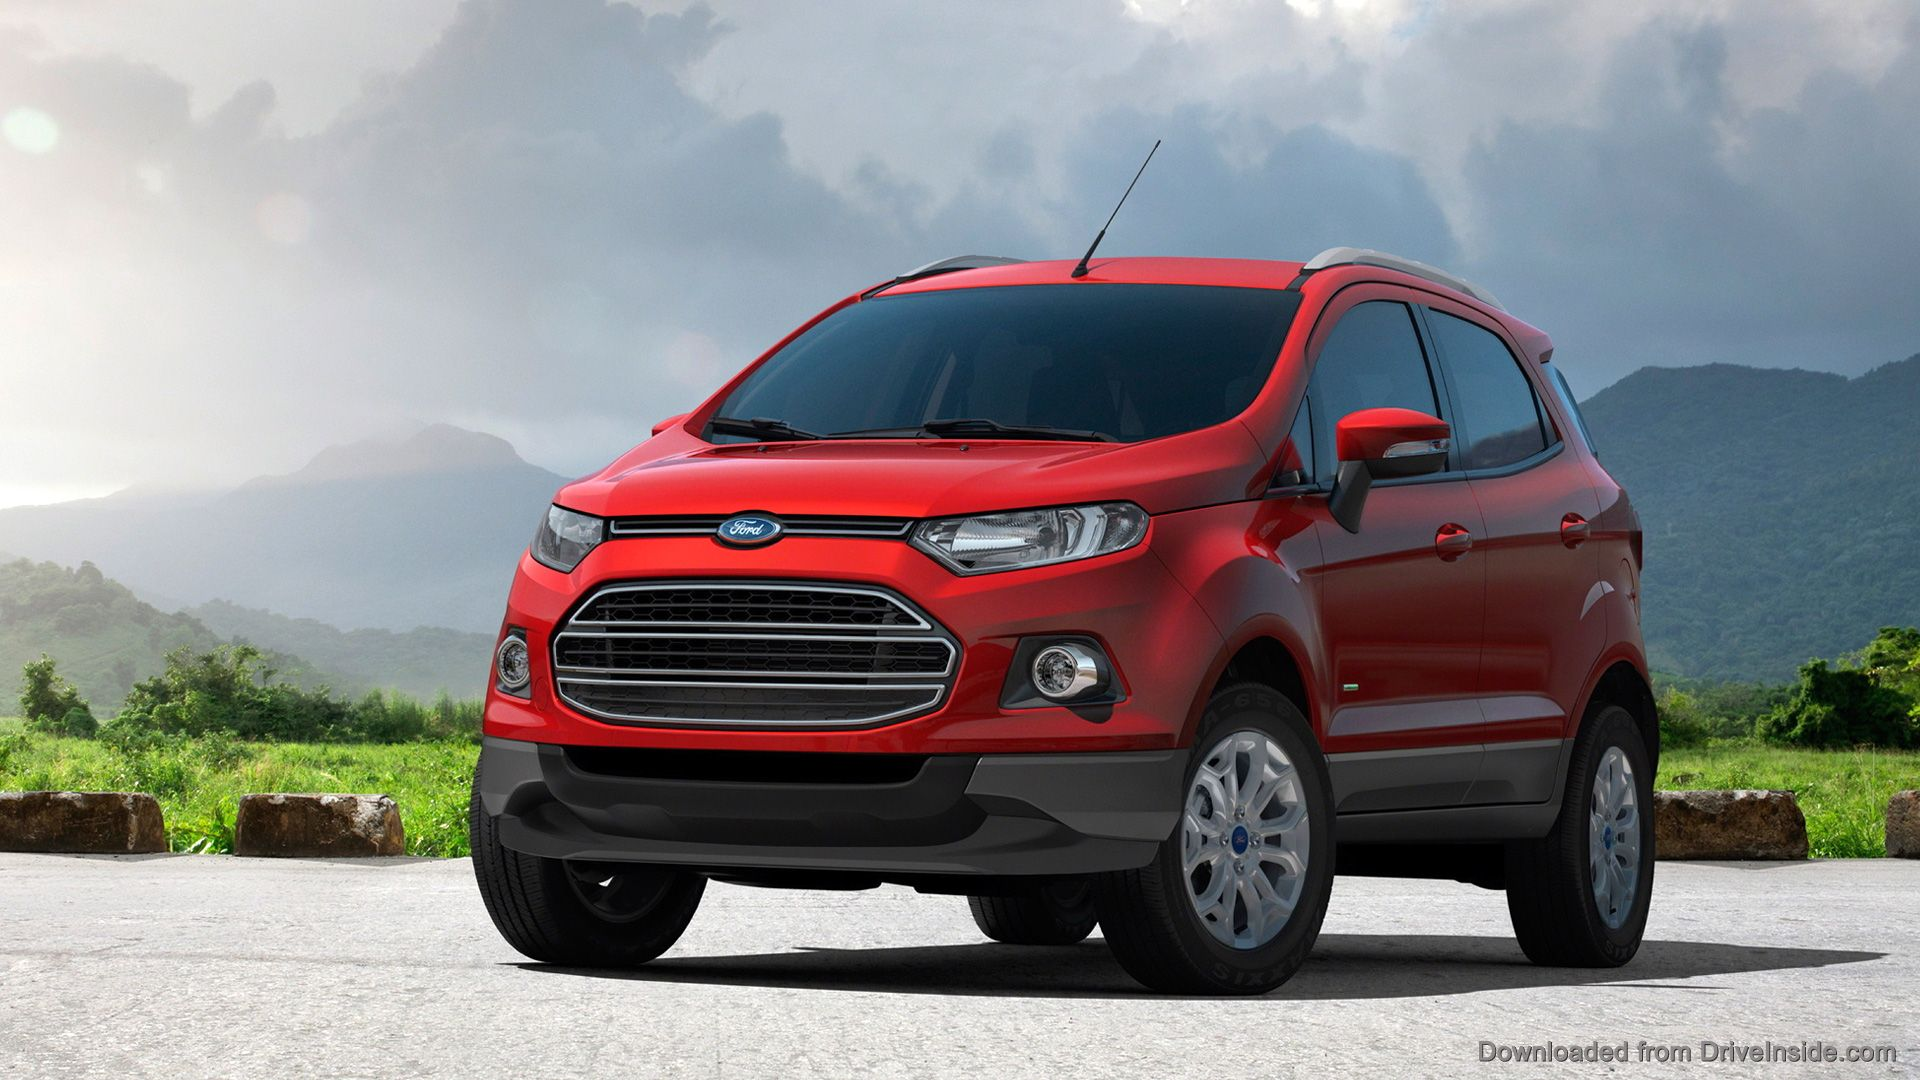 Ford Ecosport Wallpaper Http Wallpaperzoo Com Ford Ecosport